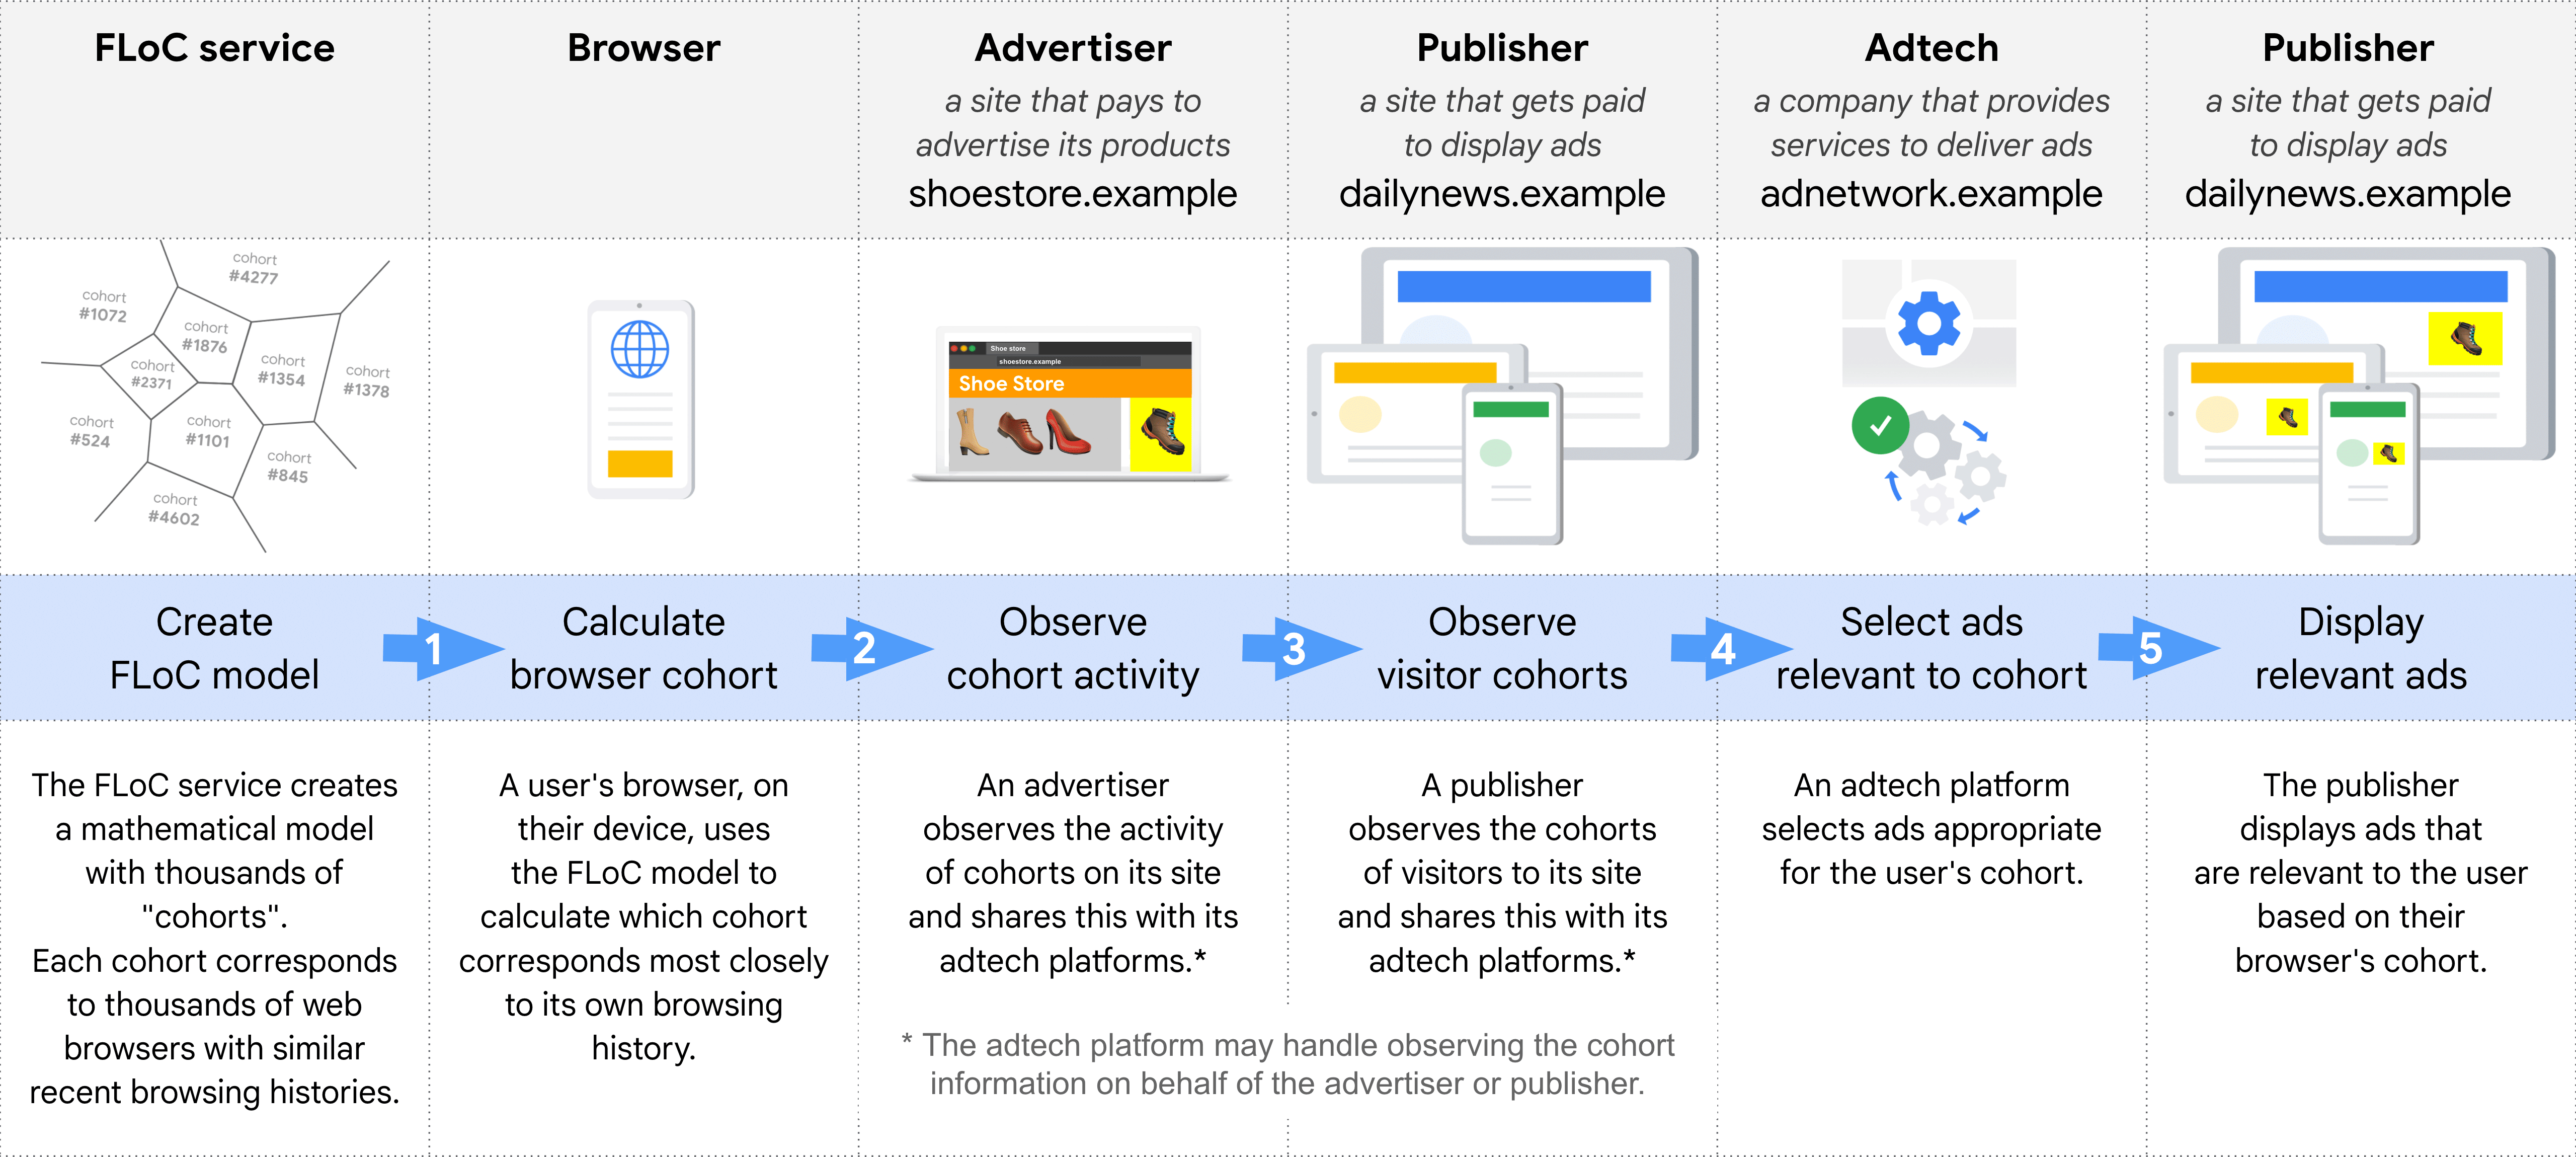 Diagram showing, step by step, the different roles in selecting and delivering an ad using    FLoC: FLoC service, Browser, Advertisers, Publisher (to observe cohorts), Adtech,    Publisher (to display ads)